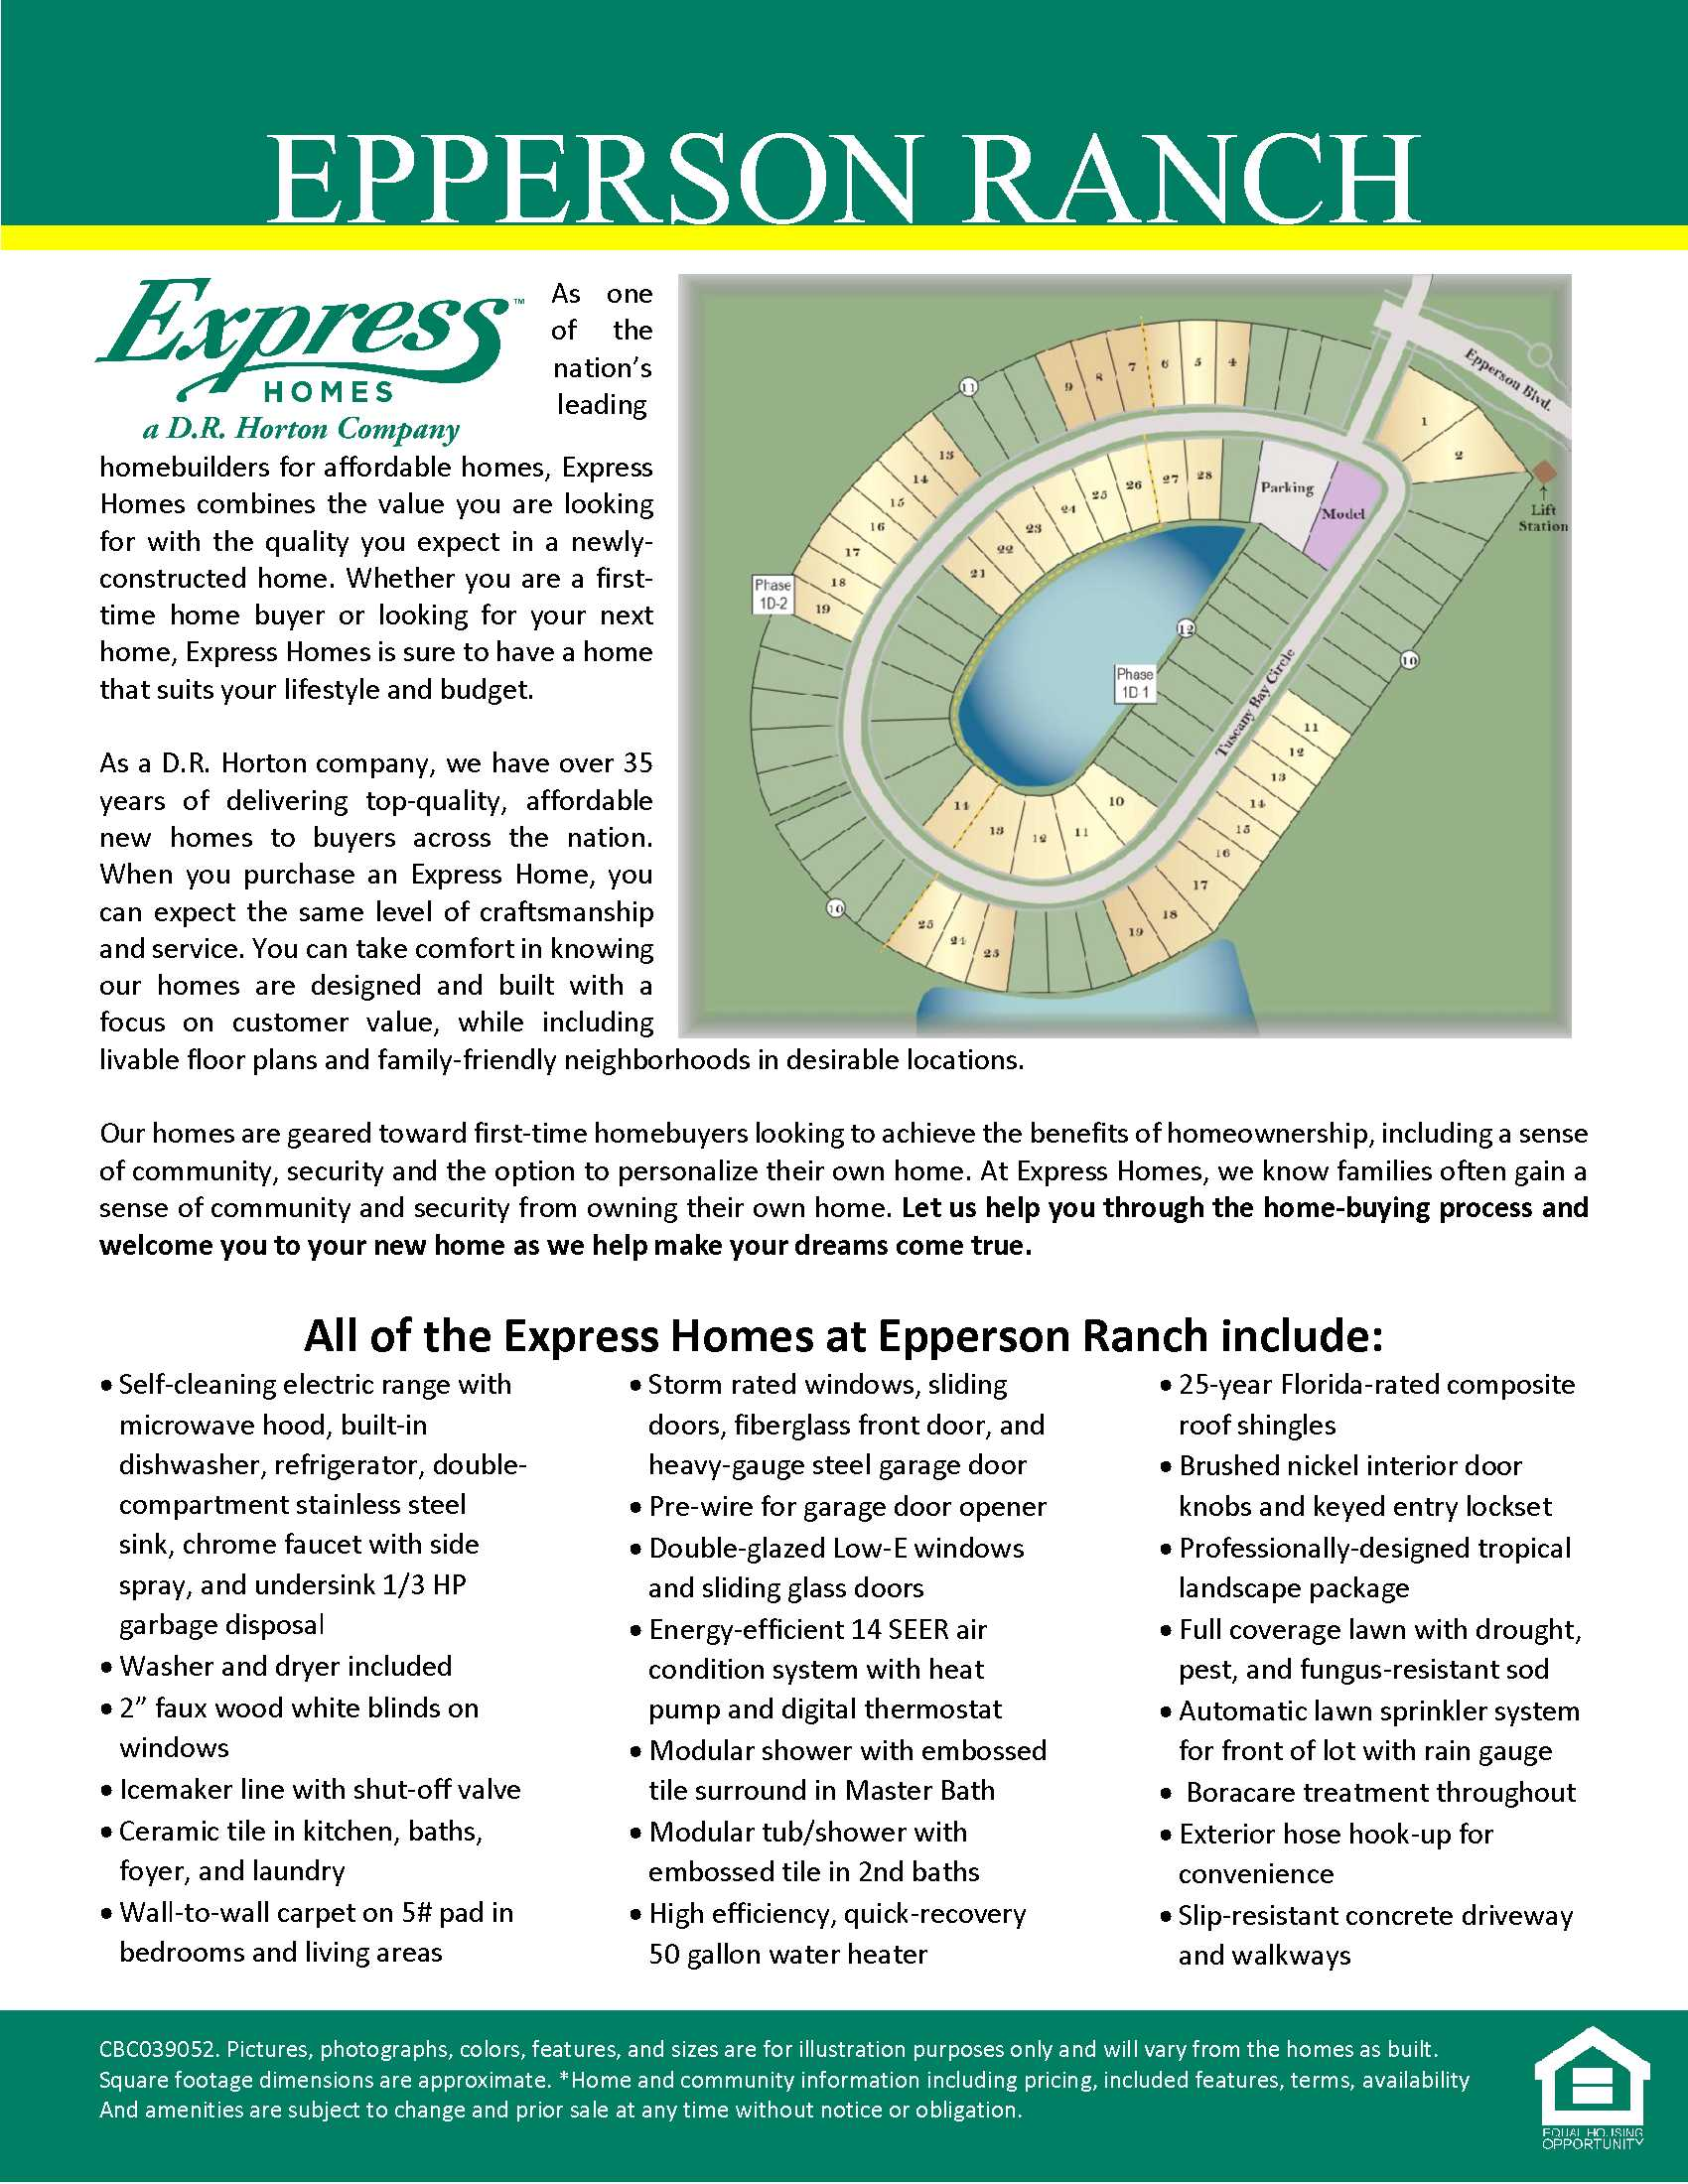 Epperson ranch express homes for Epperson ranch homes